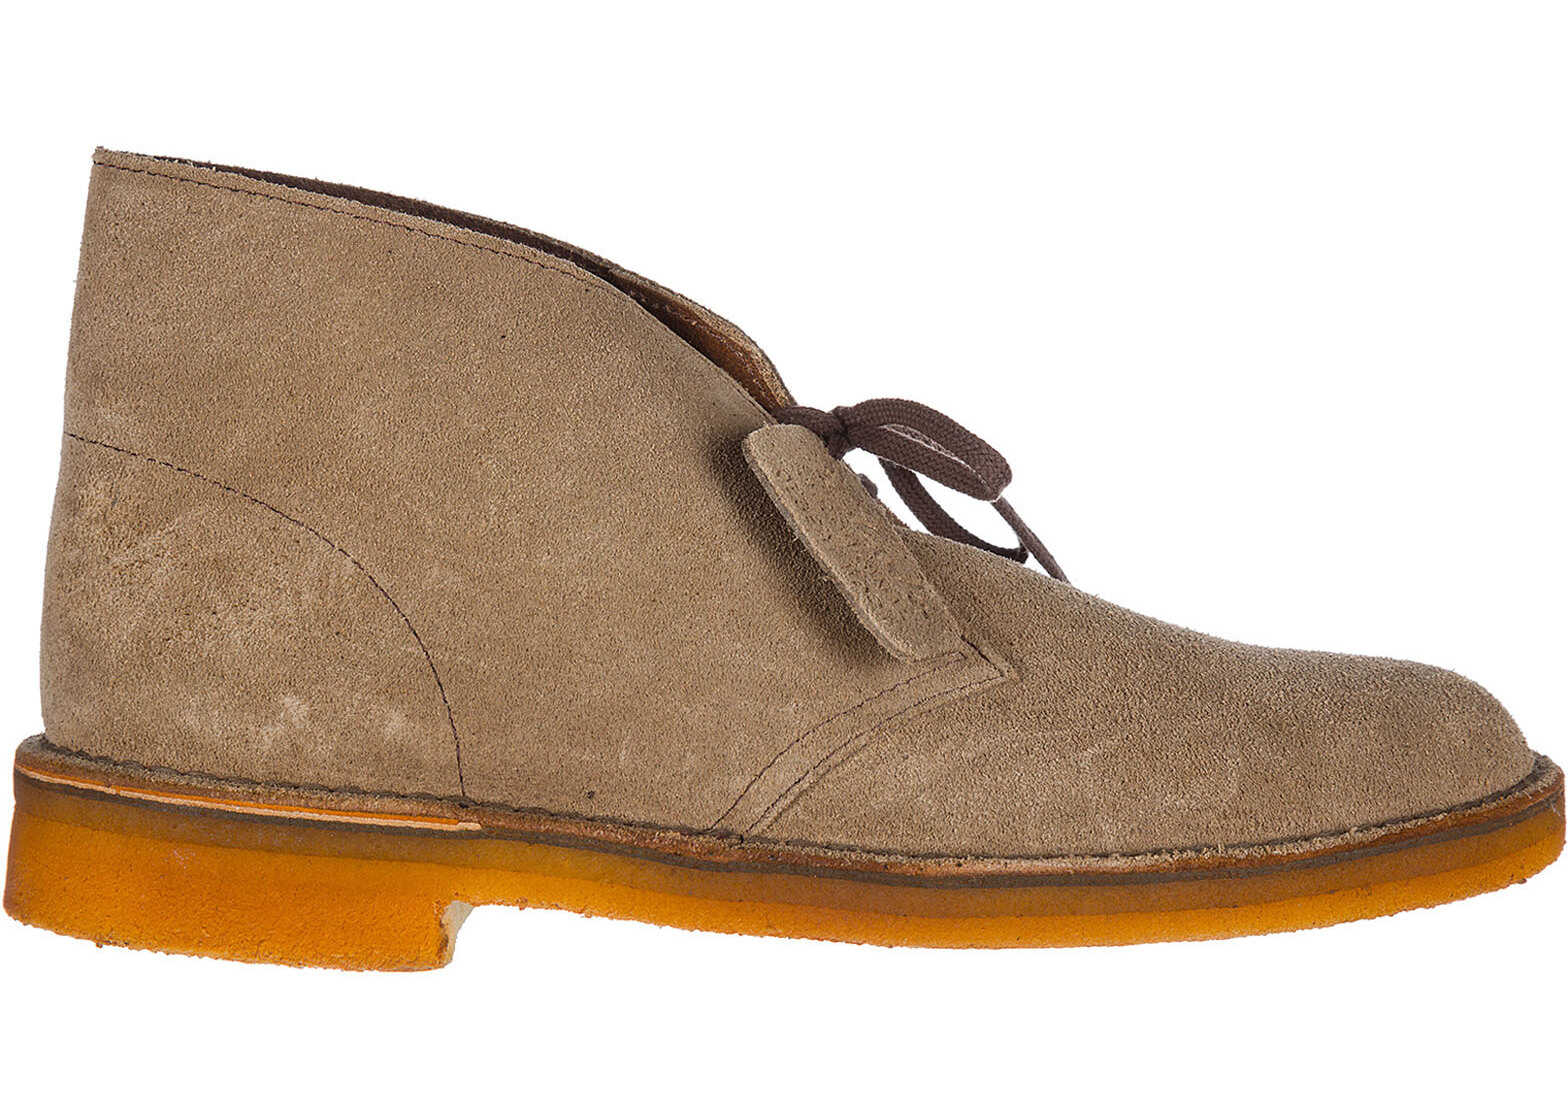 Clarks Ankle Boots Beige